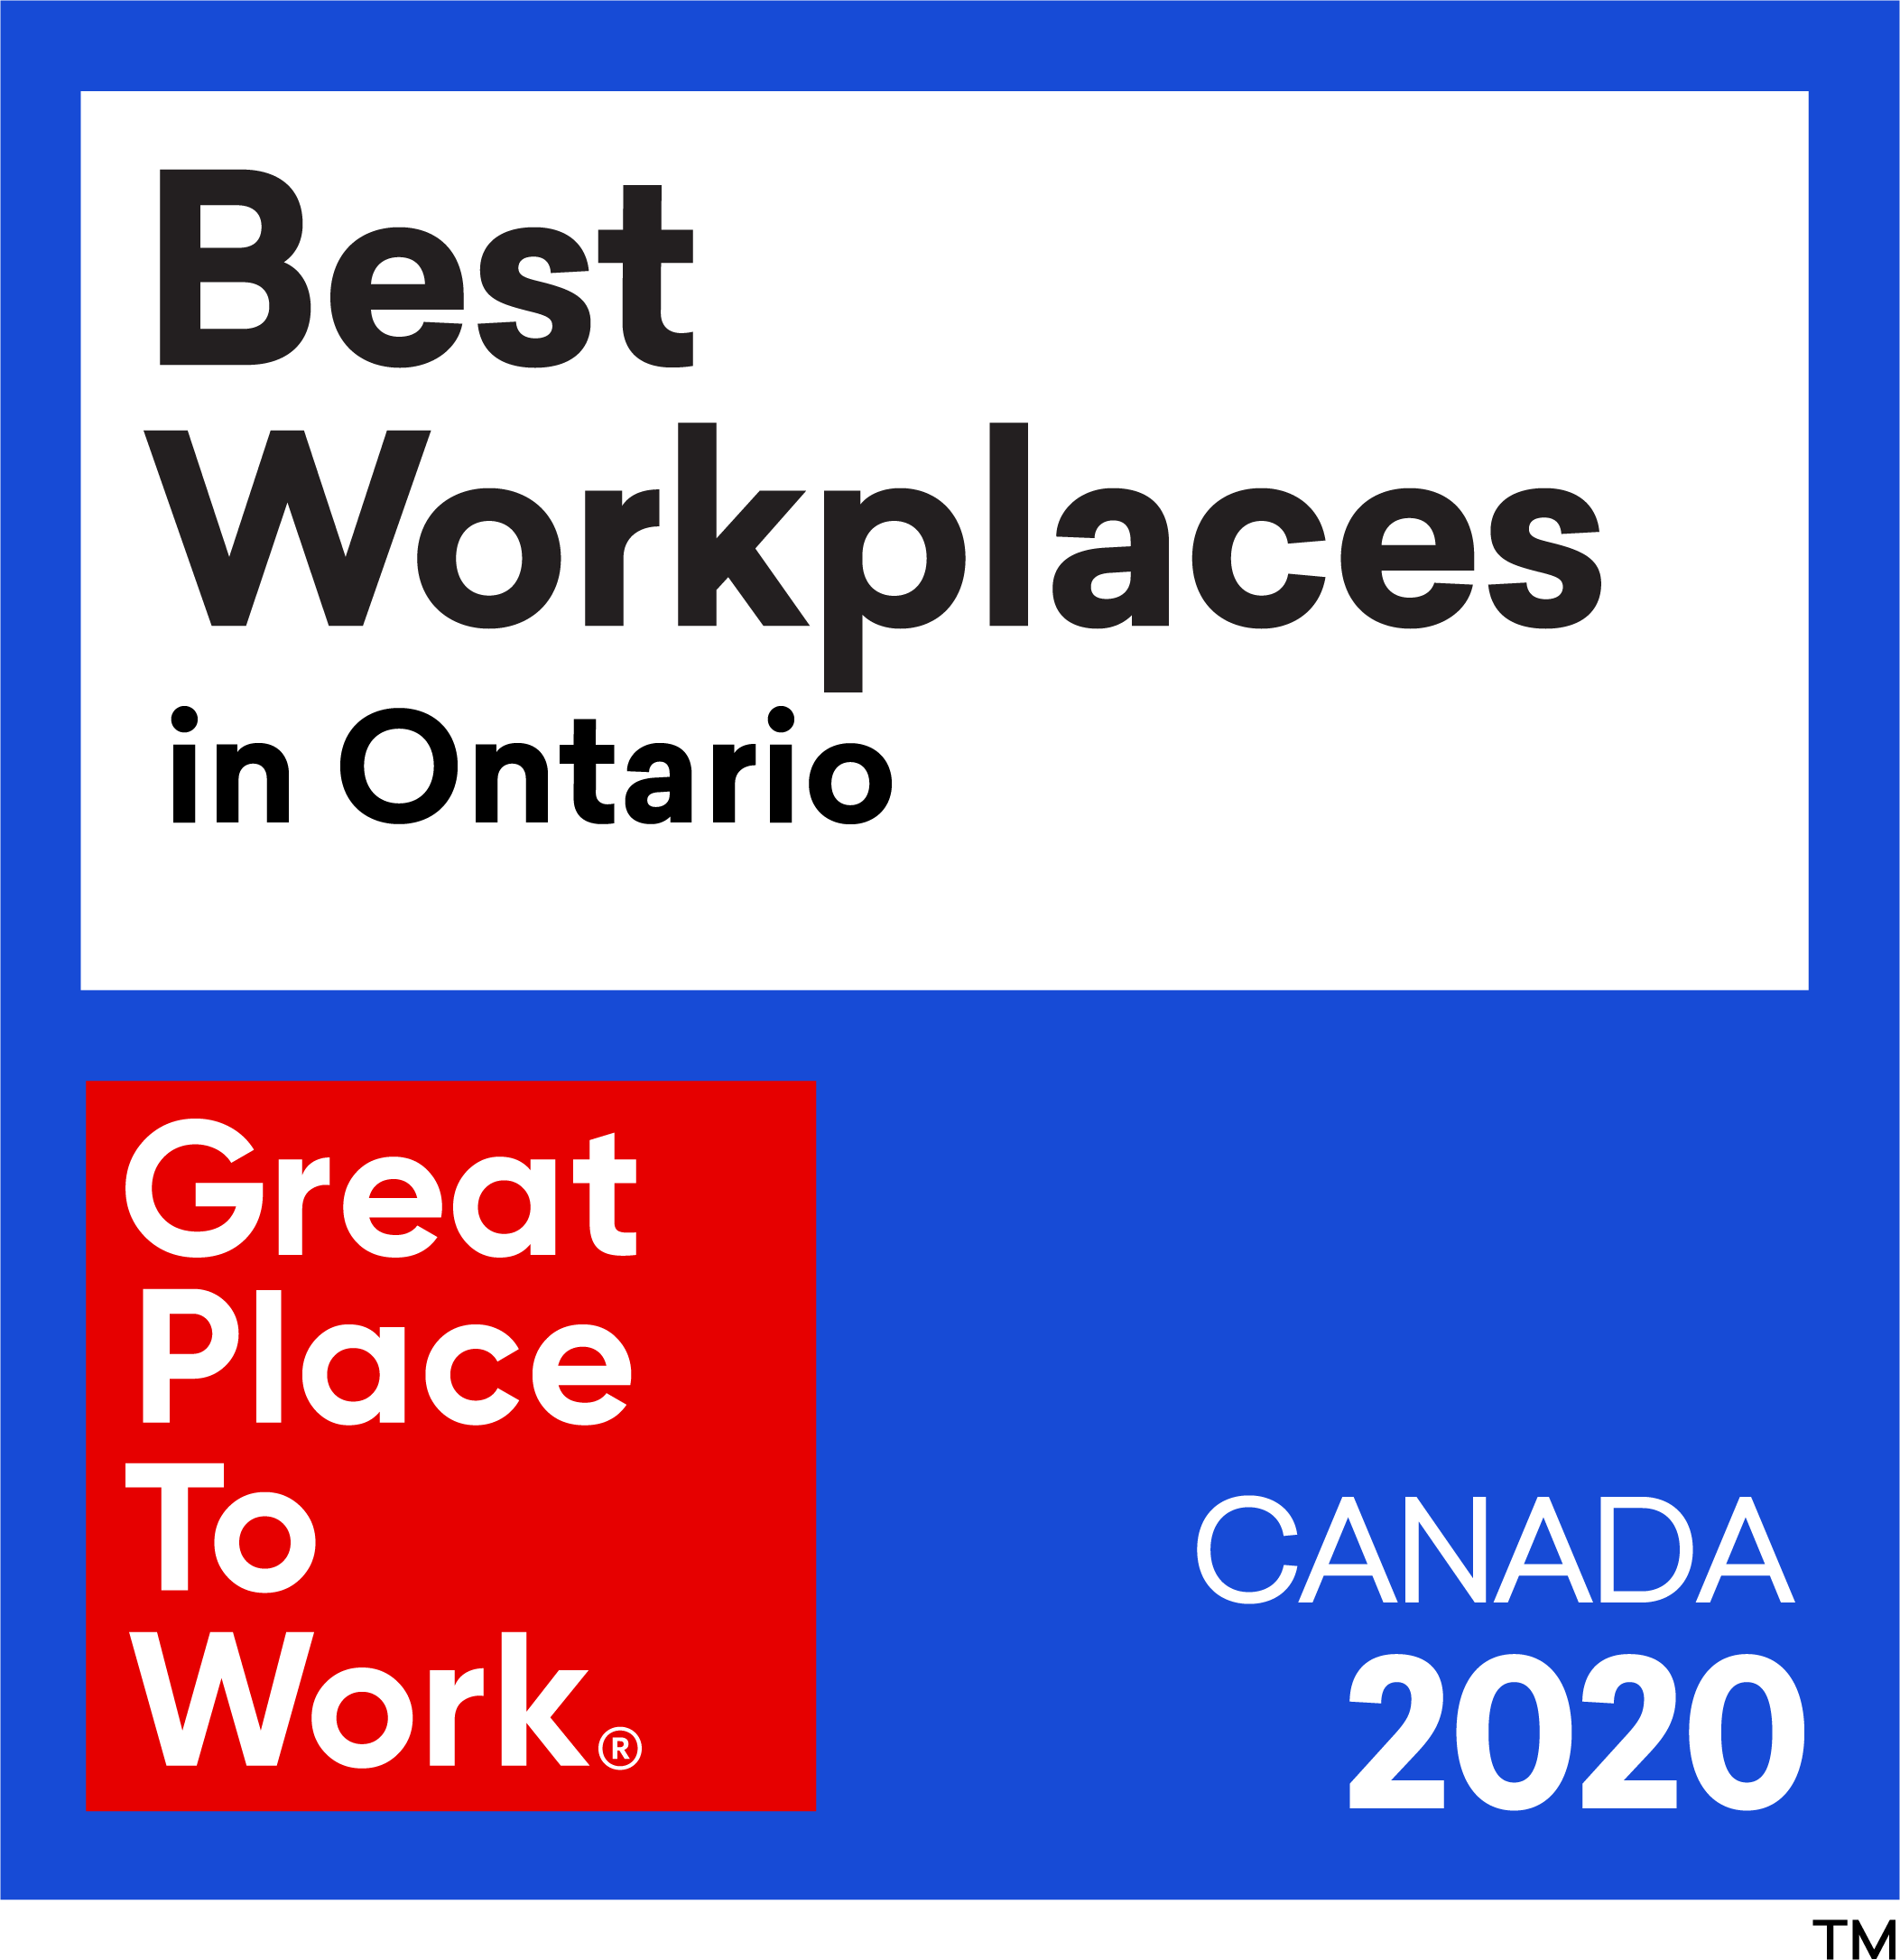 Best Workplaces in Ontario. Great Place To Work in Canada 2020.